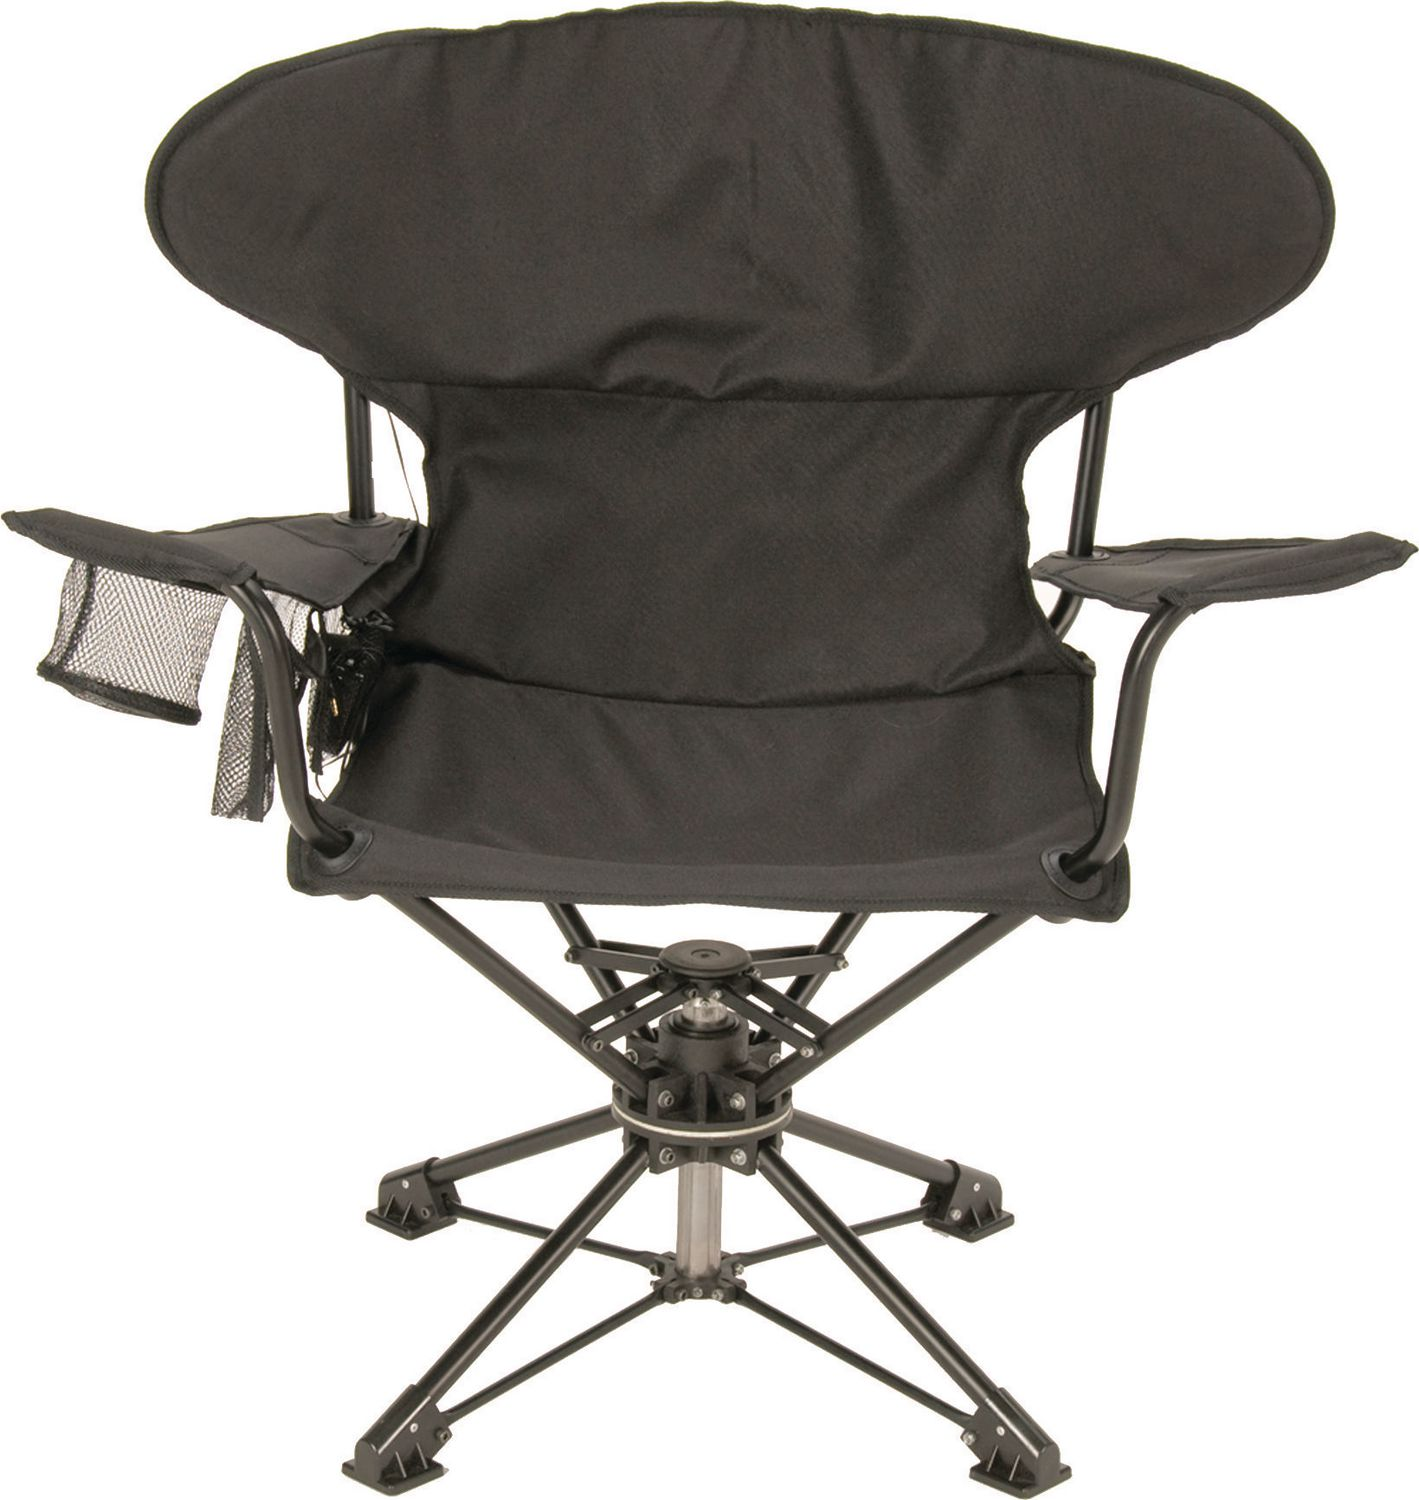 "Revolve"" Swivel Folding Chair"